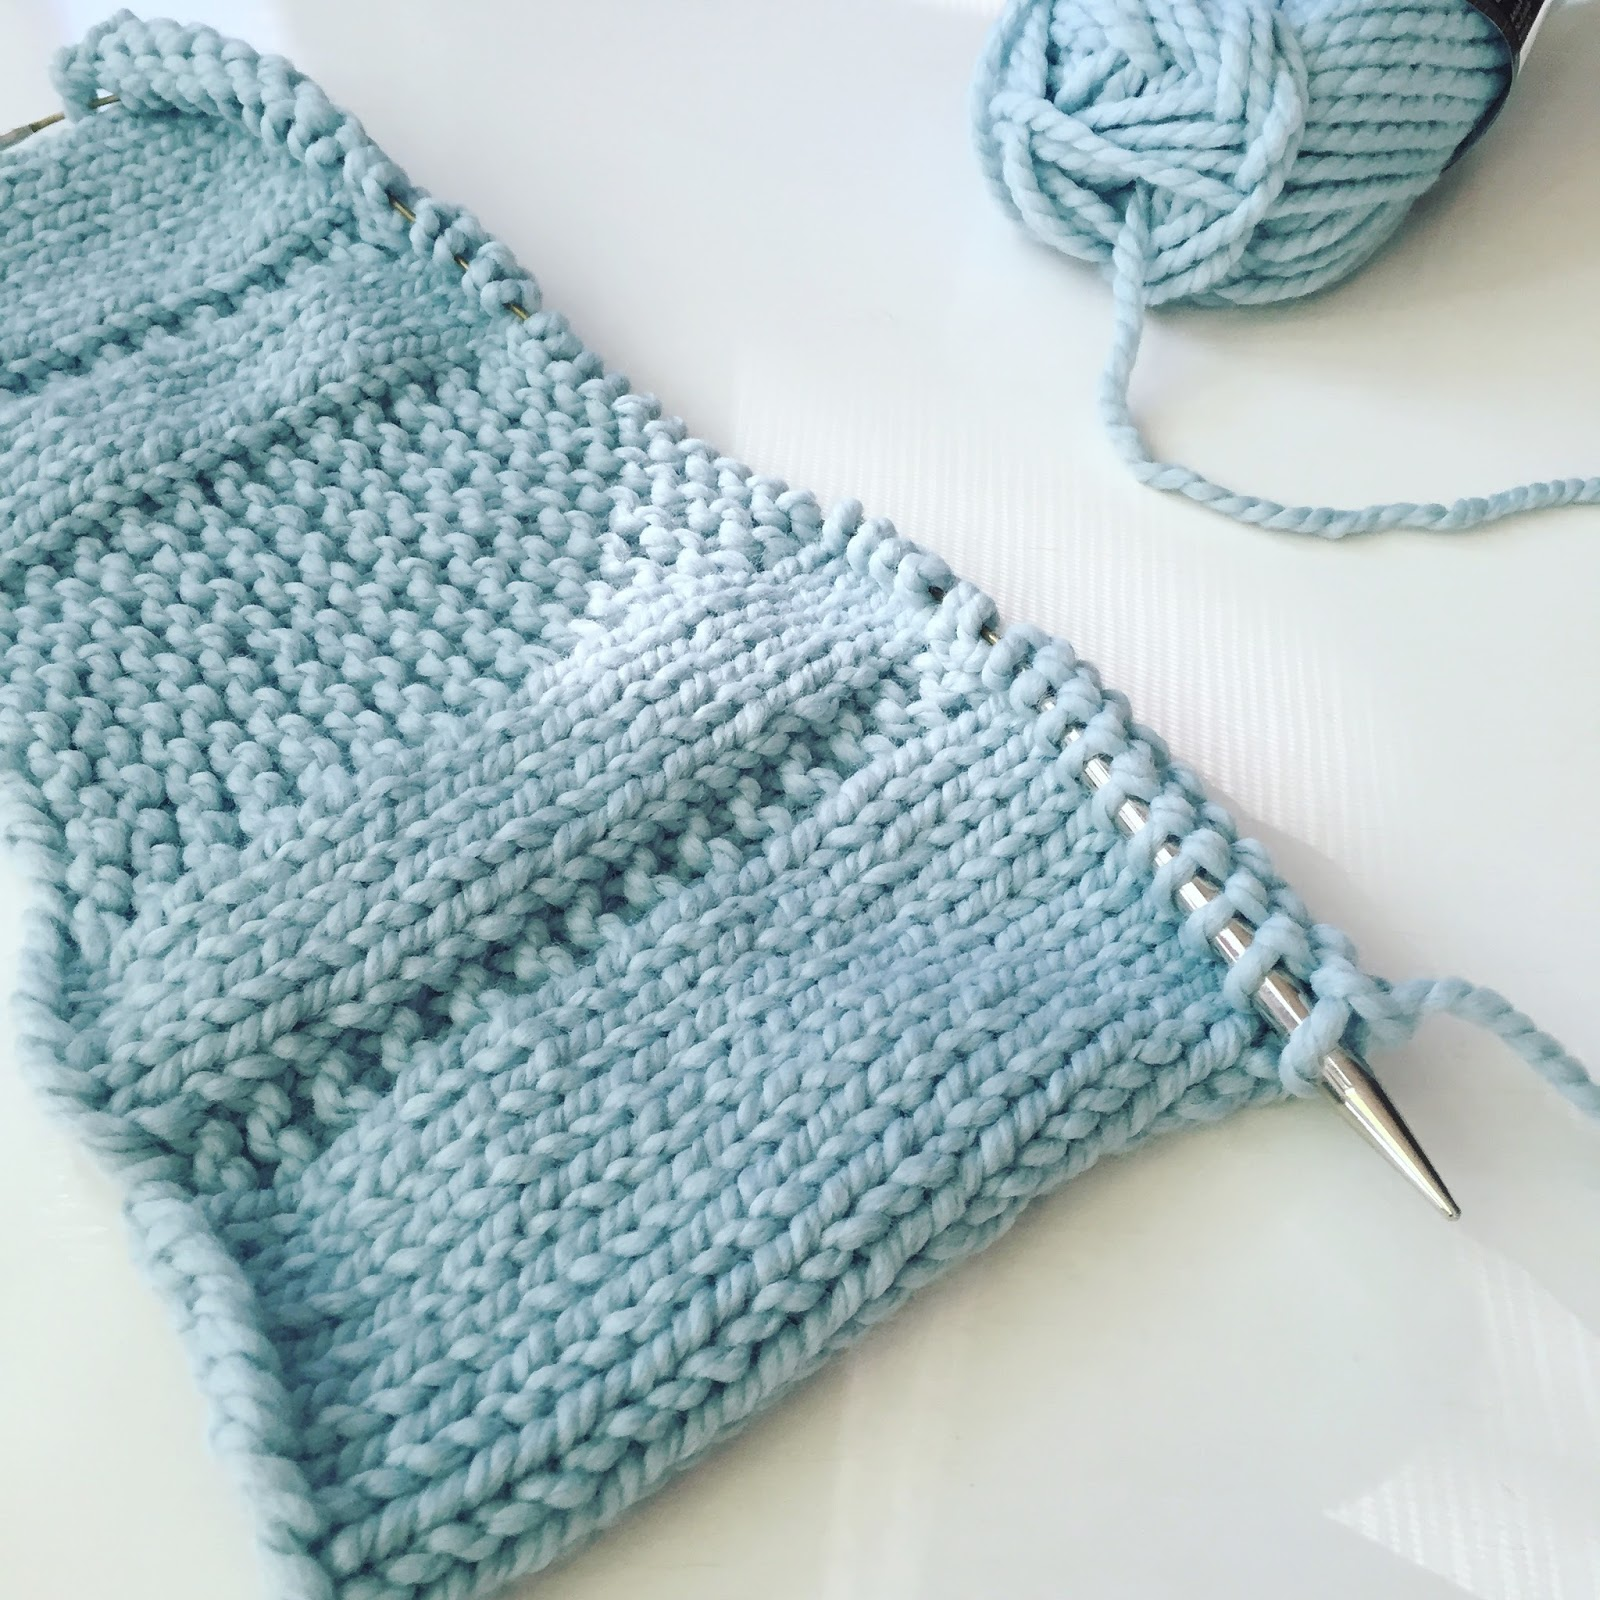 Knitting Patterns For Bulky Weight Yarn : Fifty Four Ten Studio: The Parkway Pillow - My summer knitting project!